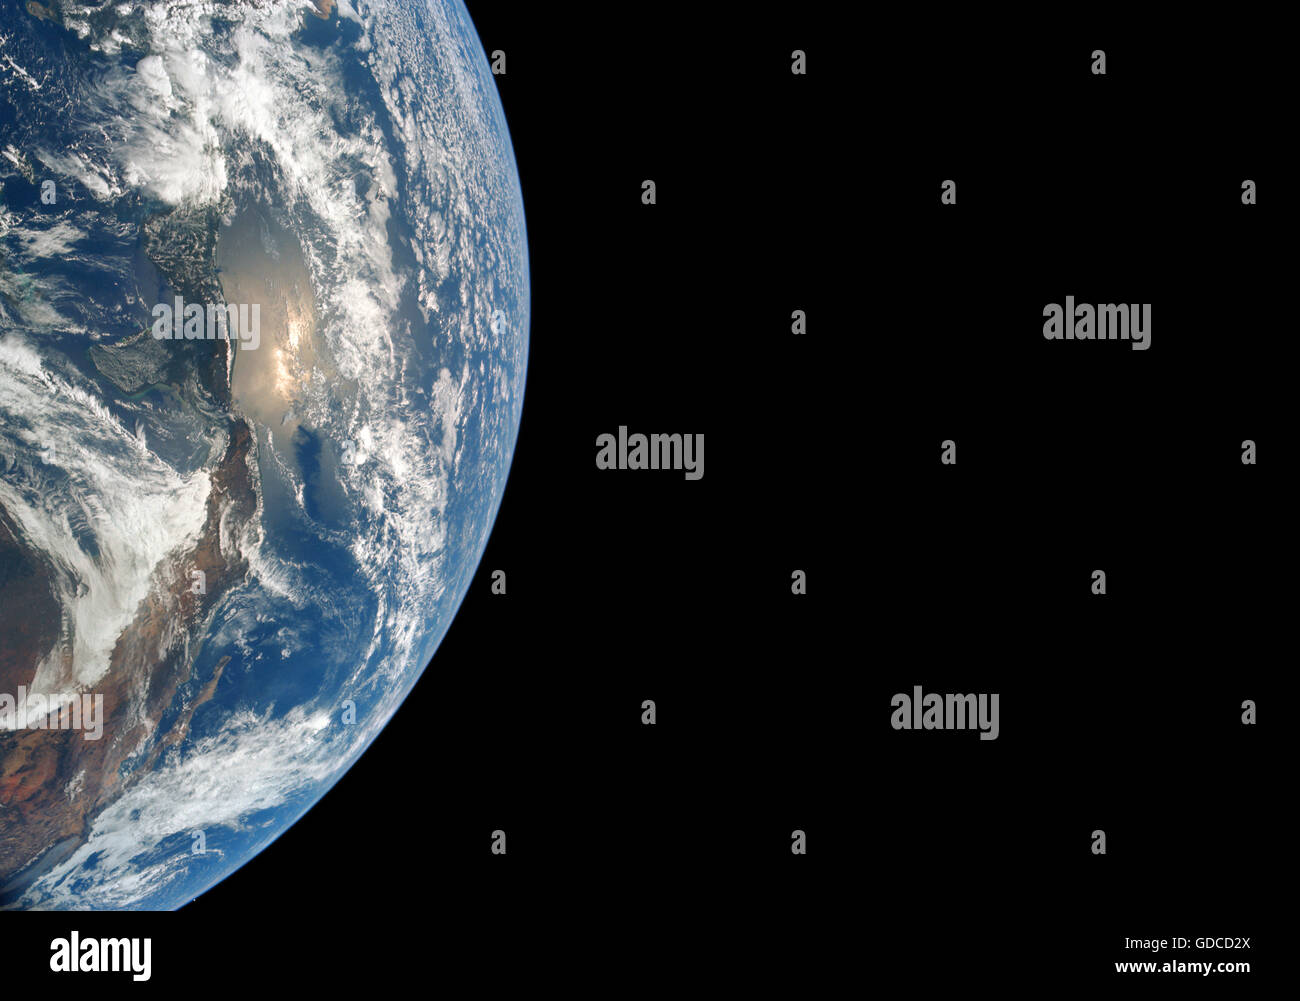 The earth viewed from space. High resolution enhanced image. Unique optimised and enhanced version of an original - Stock Image